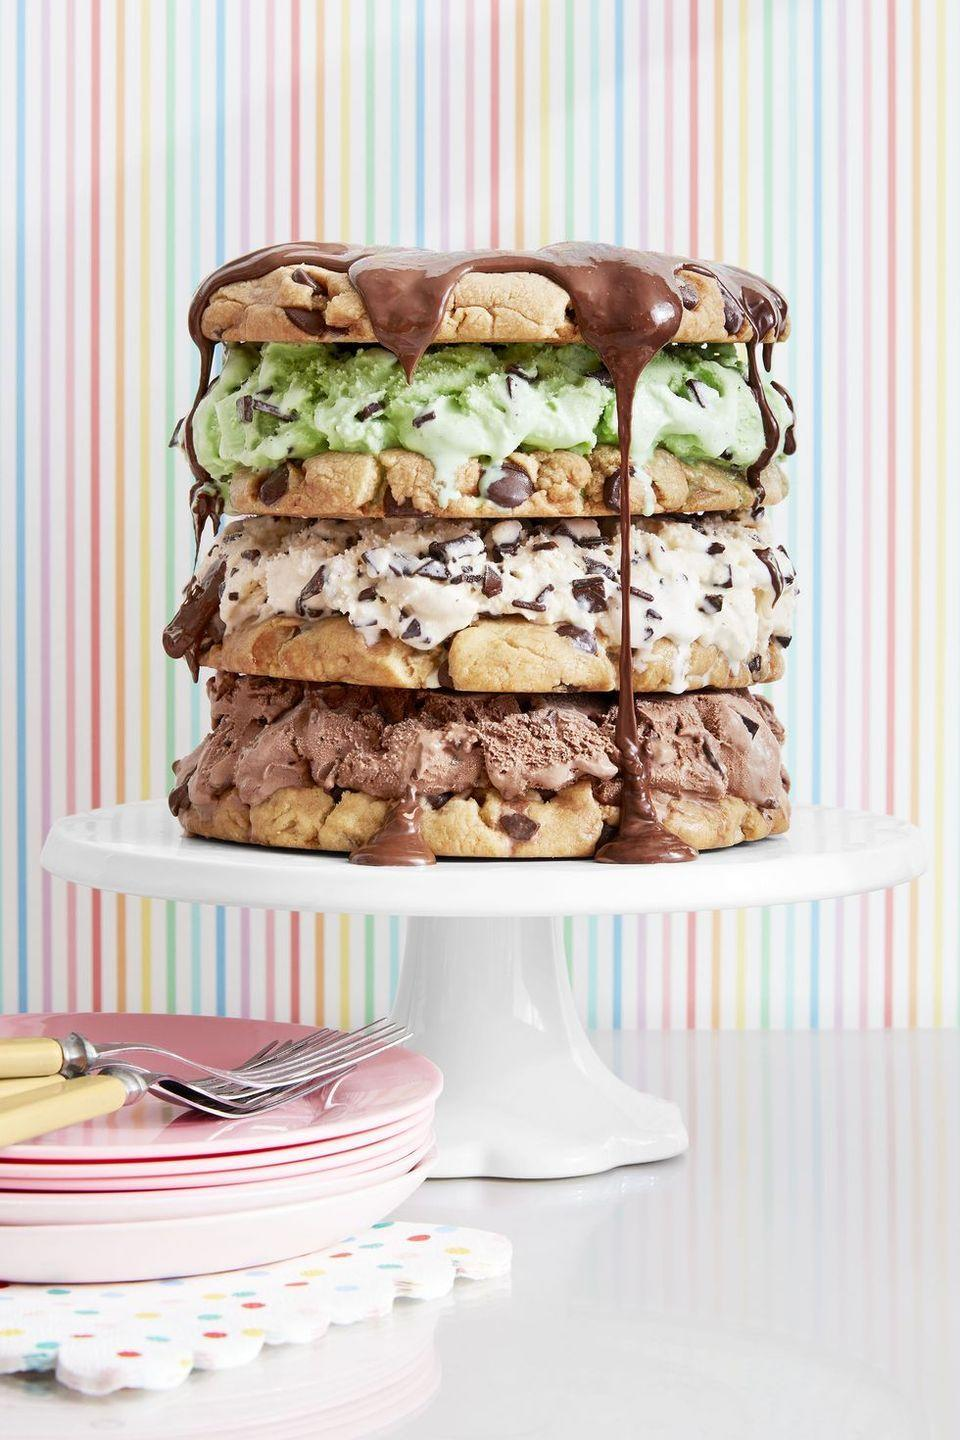 """<p><a href=""""https://nationaldaycalendar.com/national-ice-cream-cake-day-june-27/"""" rel=""""nofollow noopener"""" target=""""_blank"""" data-ylk=""""slk:National Ice Cream Cake Day"""" class=""""link rapid-noclick-resp"""">National Ice Cream Cake Day</a> also falls in June, so double the celebrations with a towering ice cream sandwich """"cake.""""</p><p><strong><em><a href=""""https://www.womansday.com/food-recipes/a32883539/chocolate-chip-triple-decker-recipe/"""" rel=""""nofollow noopener"""" target=""""_blank"""" data-ylk=""""slk:Get the Chocolate Chip Triple-Decker Ice Cream Cake recipe."""" class=""""link rapid-noclick-resp"""">Get the Chocolate Chip Triple-Decker Ice Cream Cake recipe.</a></em></strong></p>"""